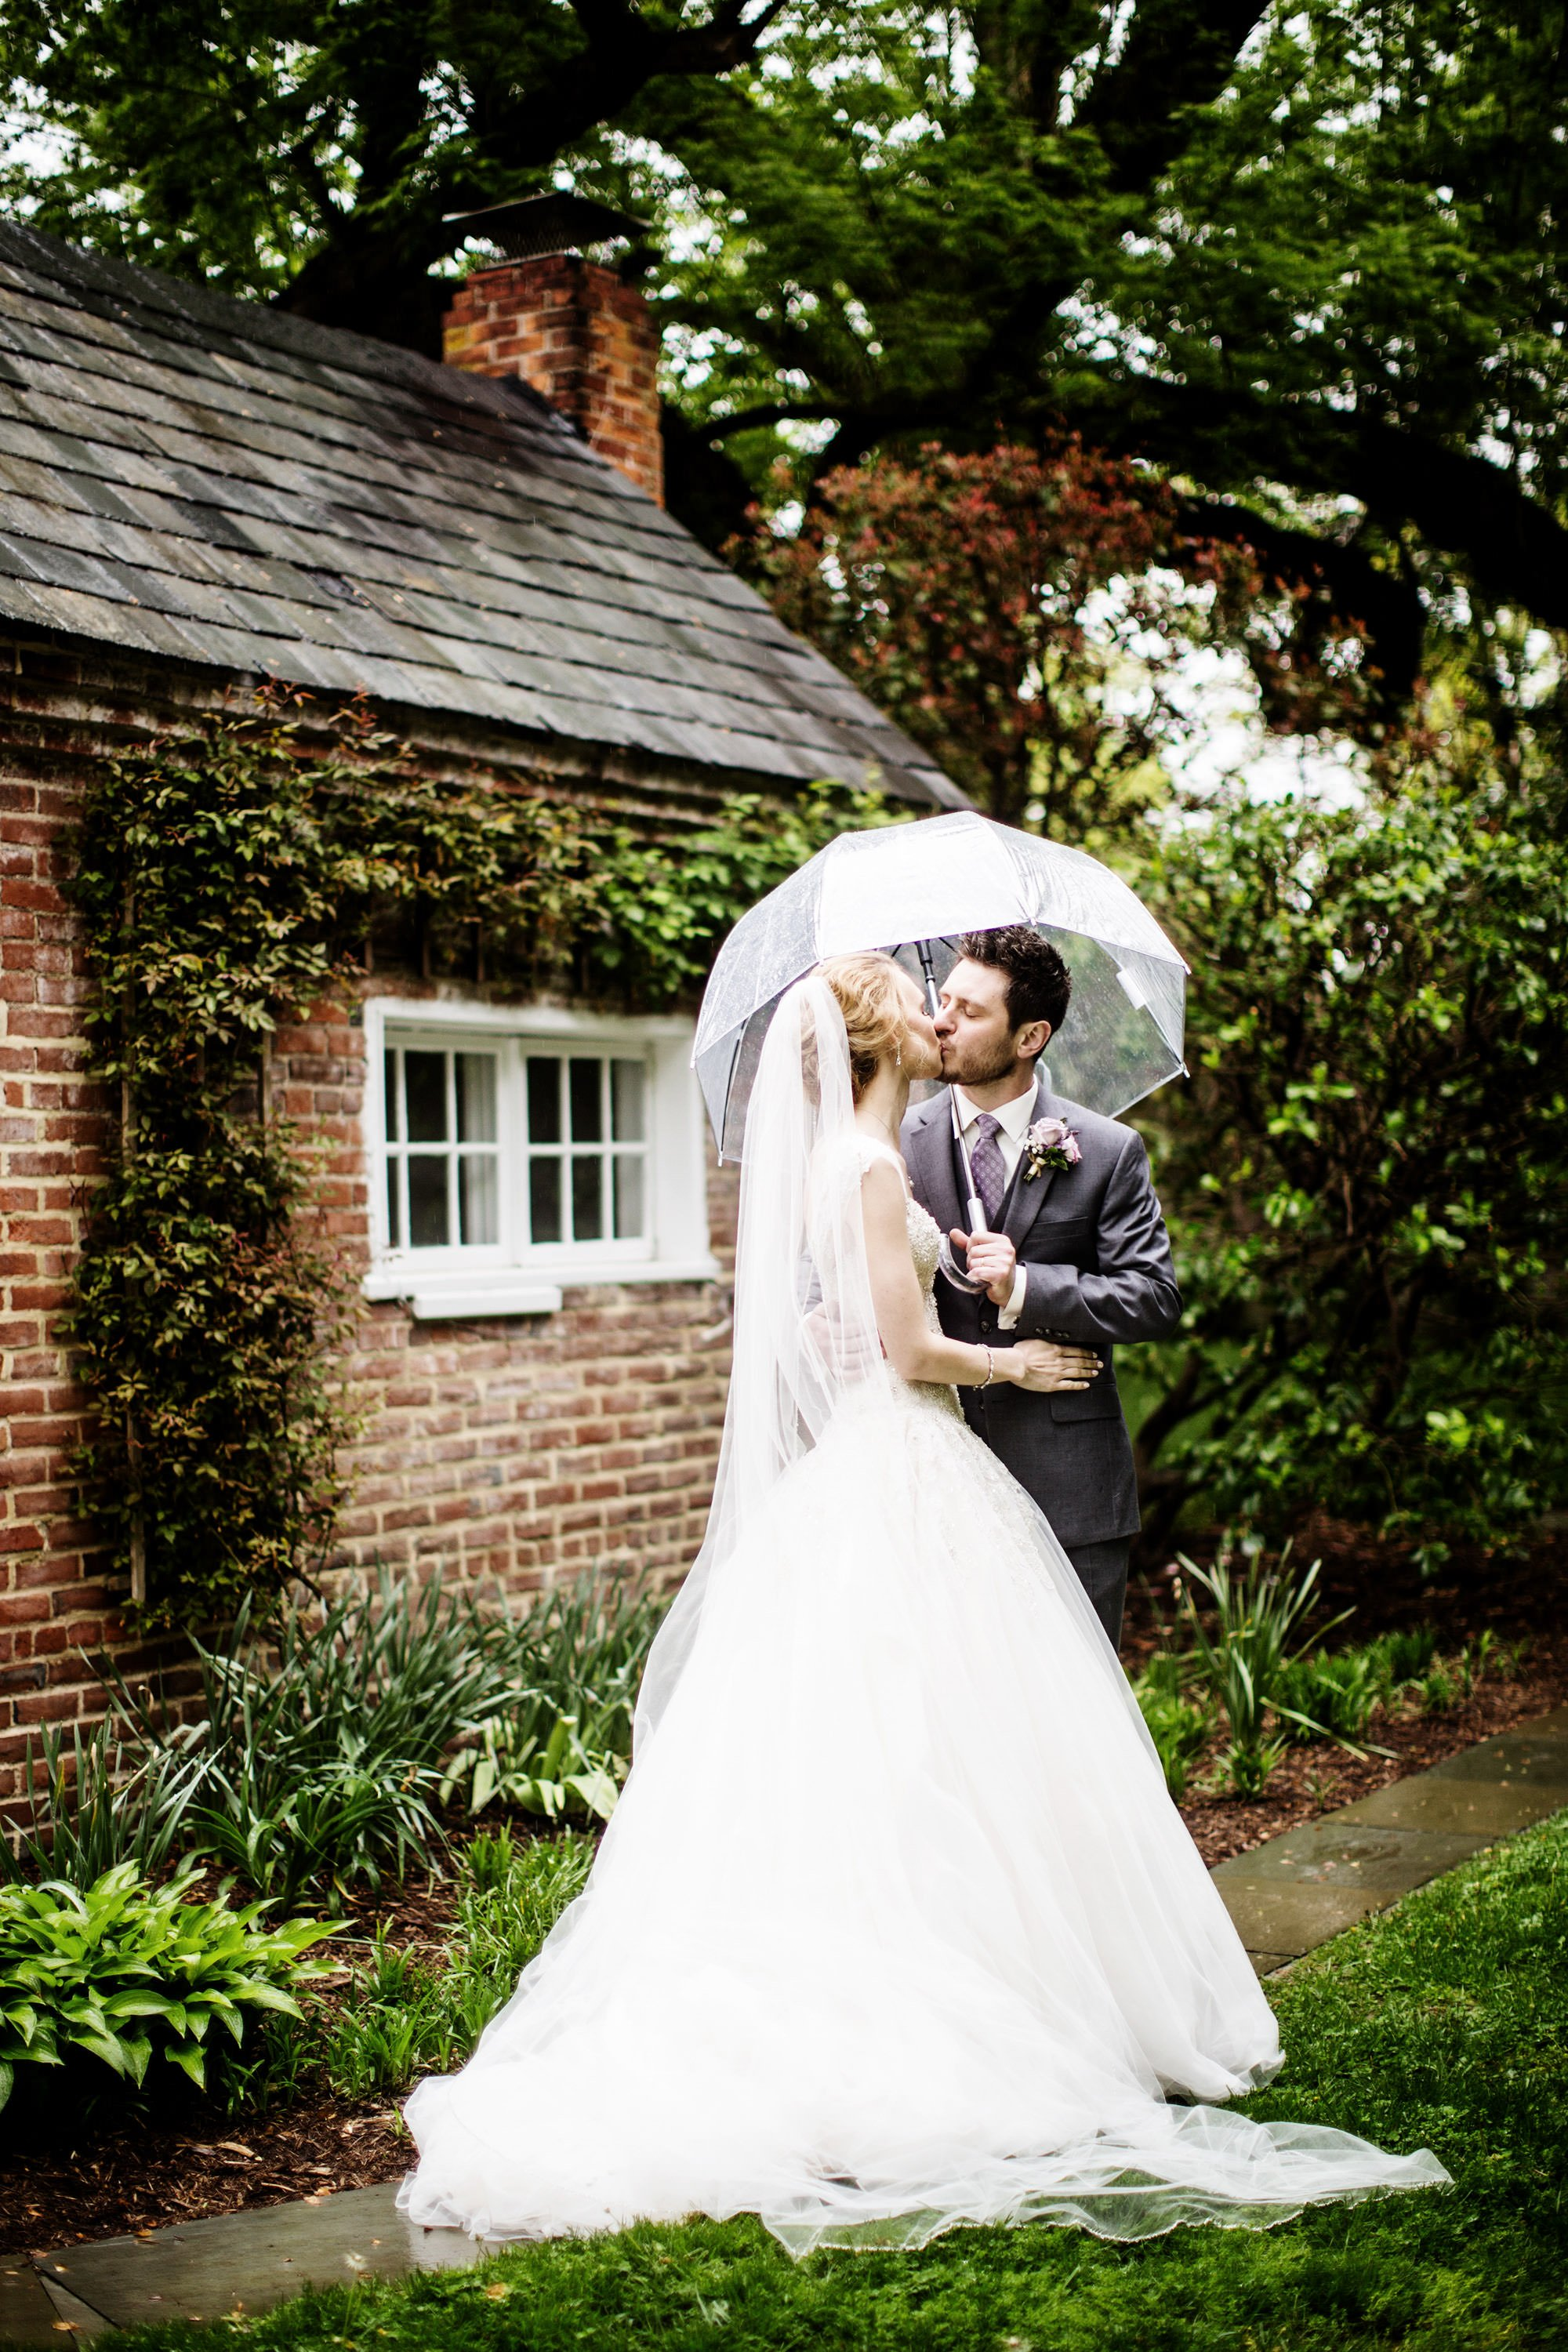 The bride and groom pose for a portrait in the rain in the garden across the street from the Tidewater Inn.